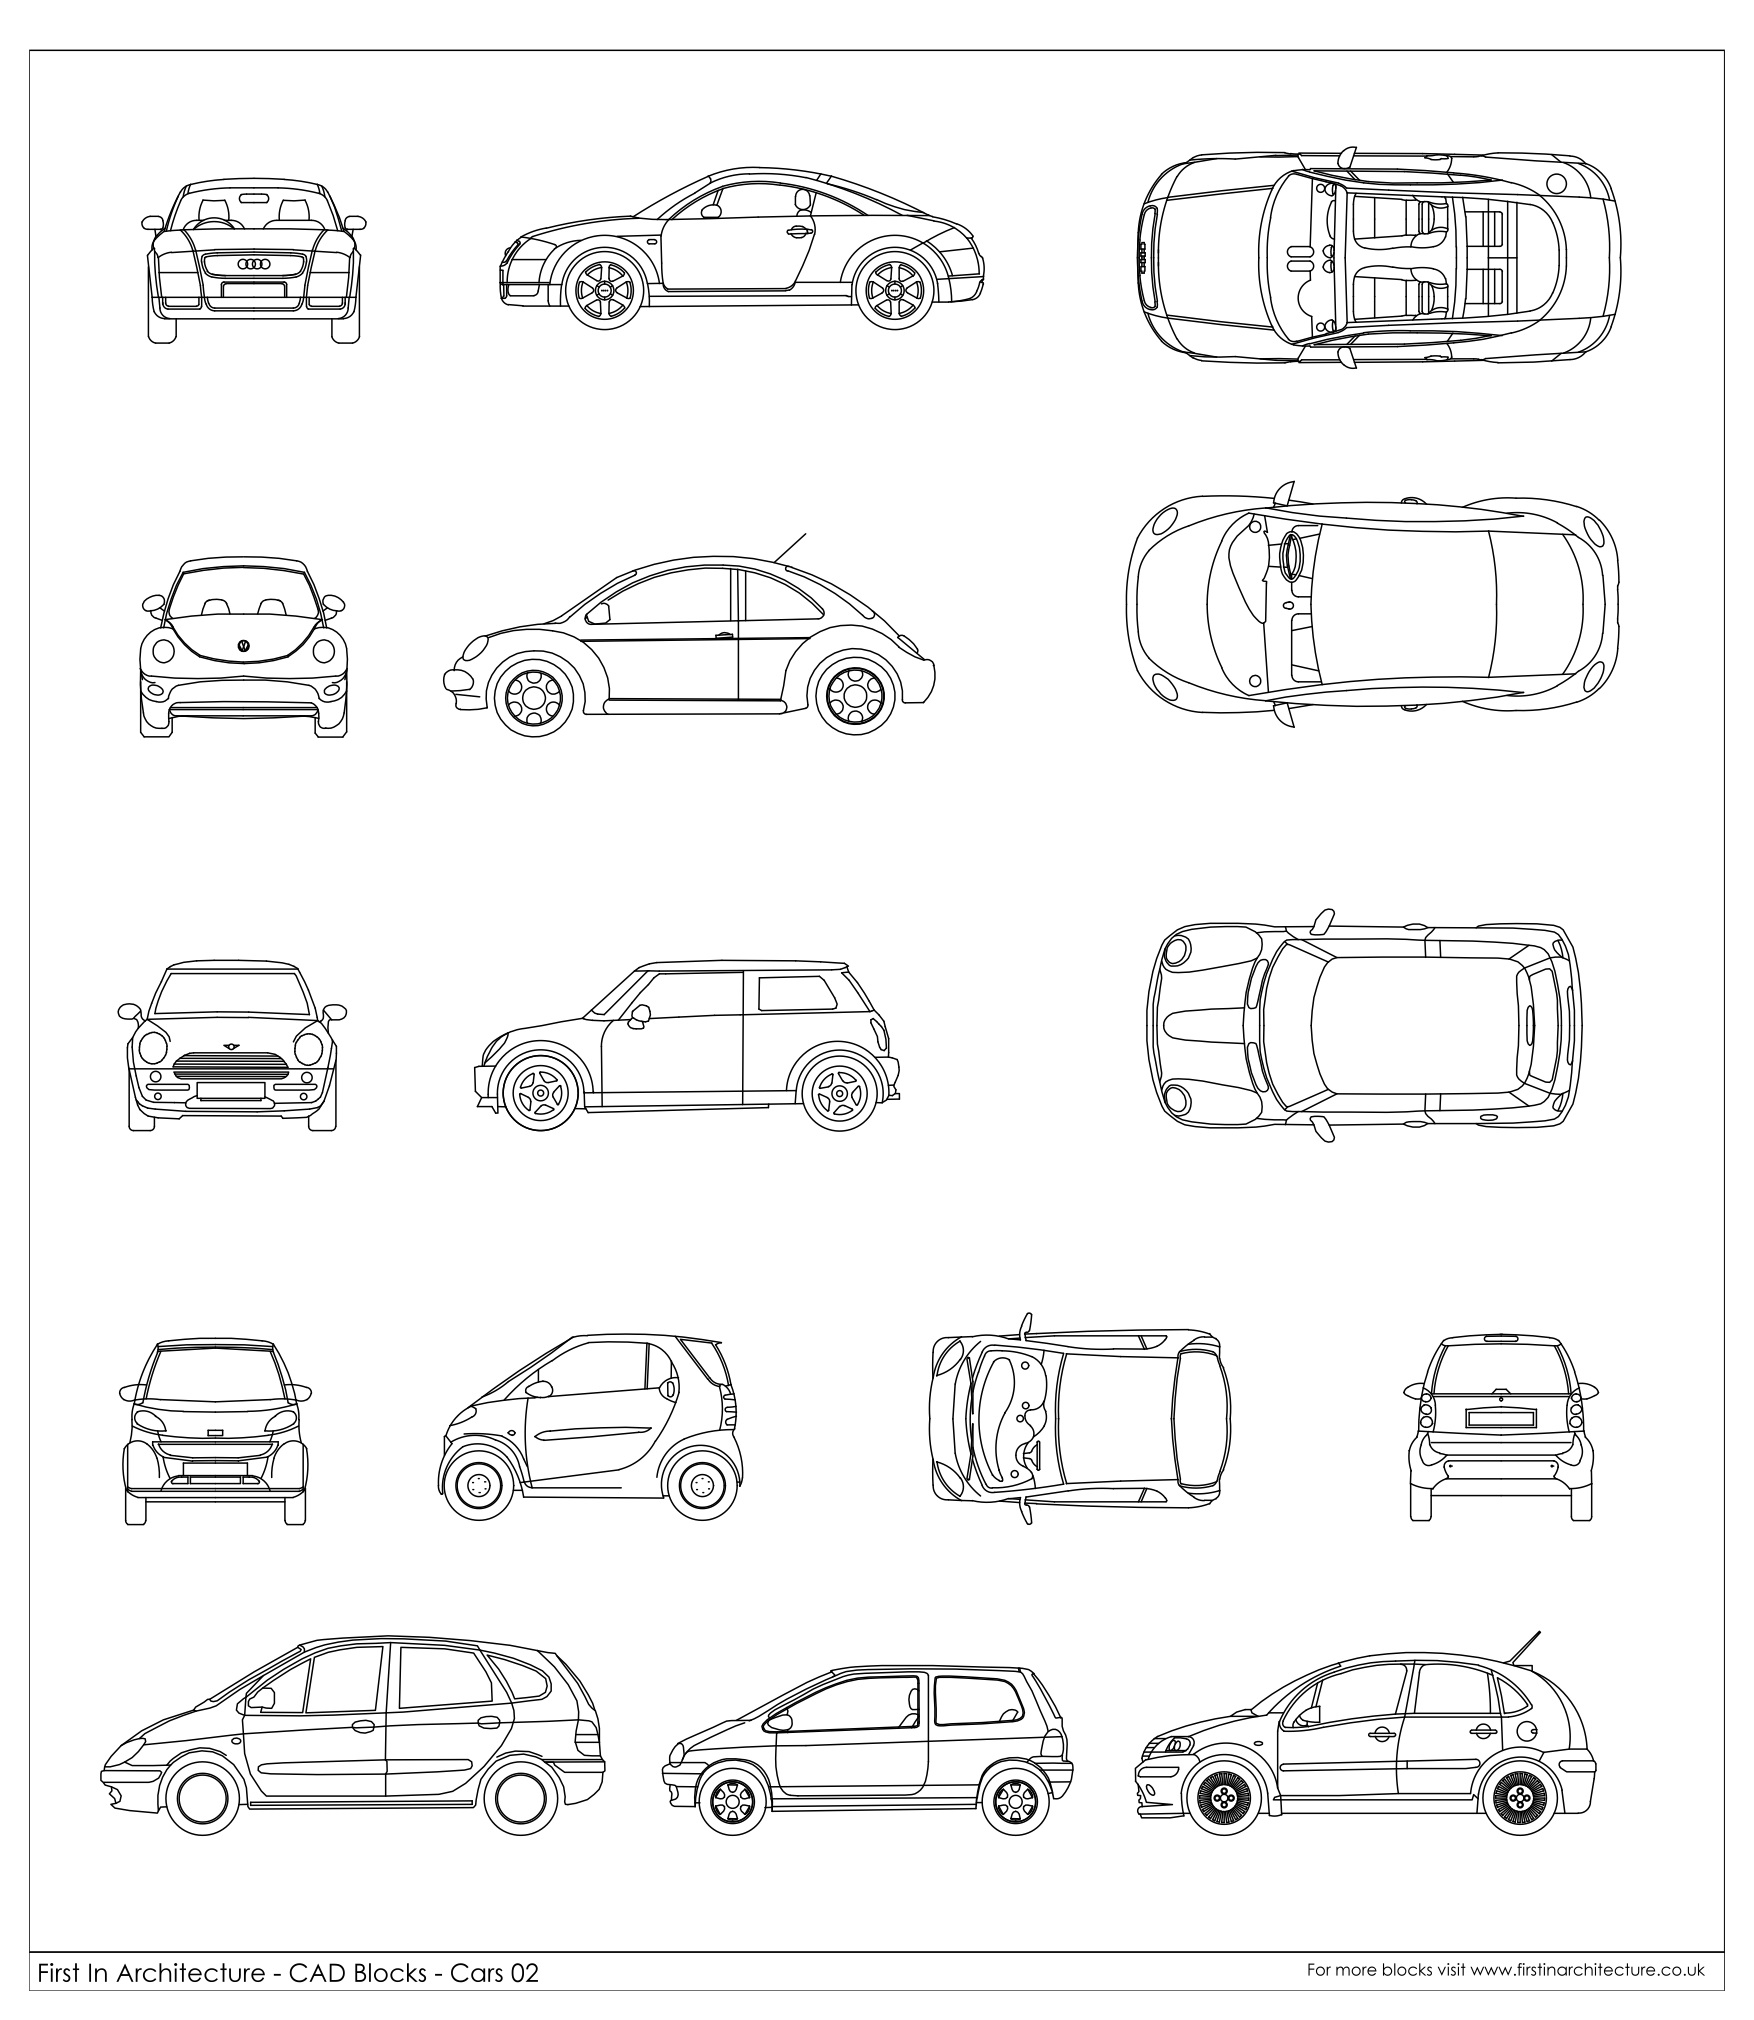 Architecture Drawing Cars cad blocks - cars 02 | first in architecture